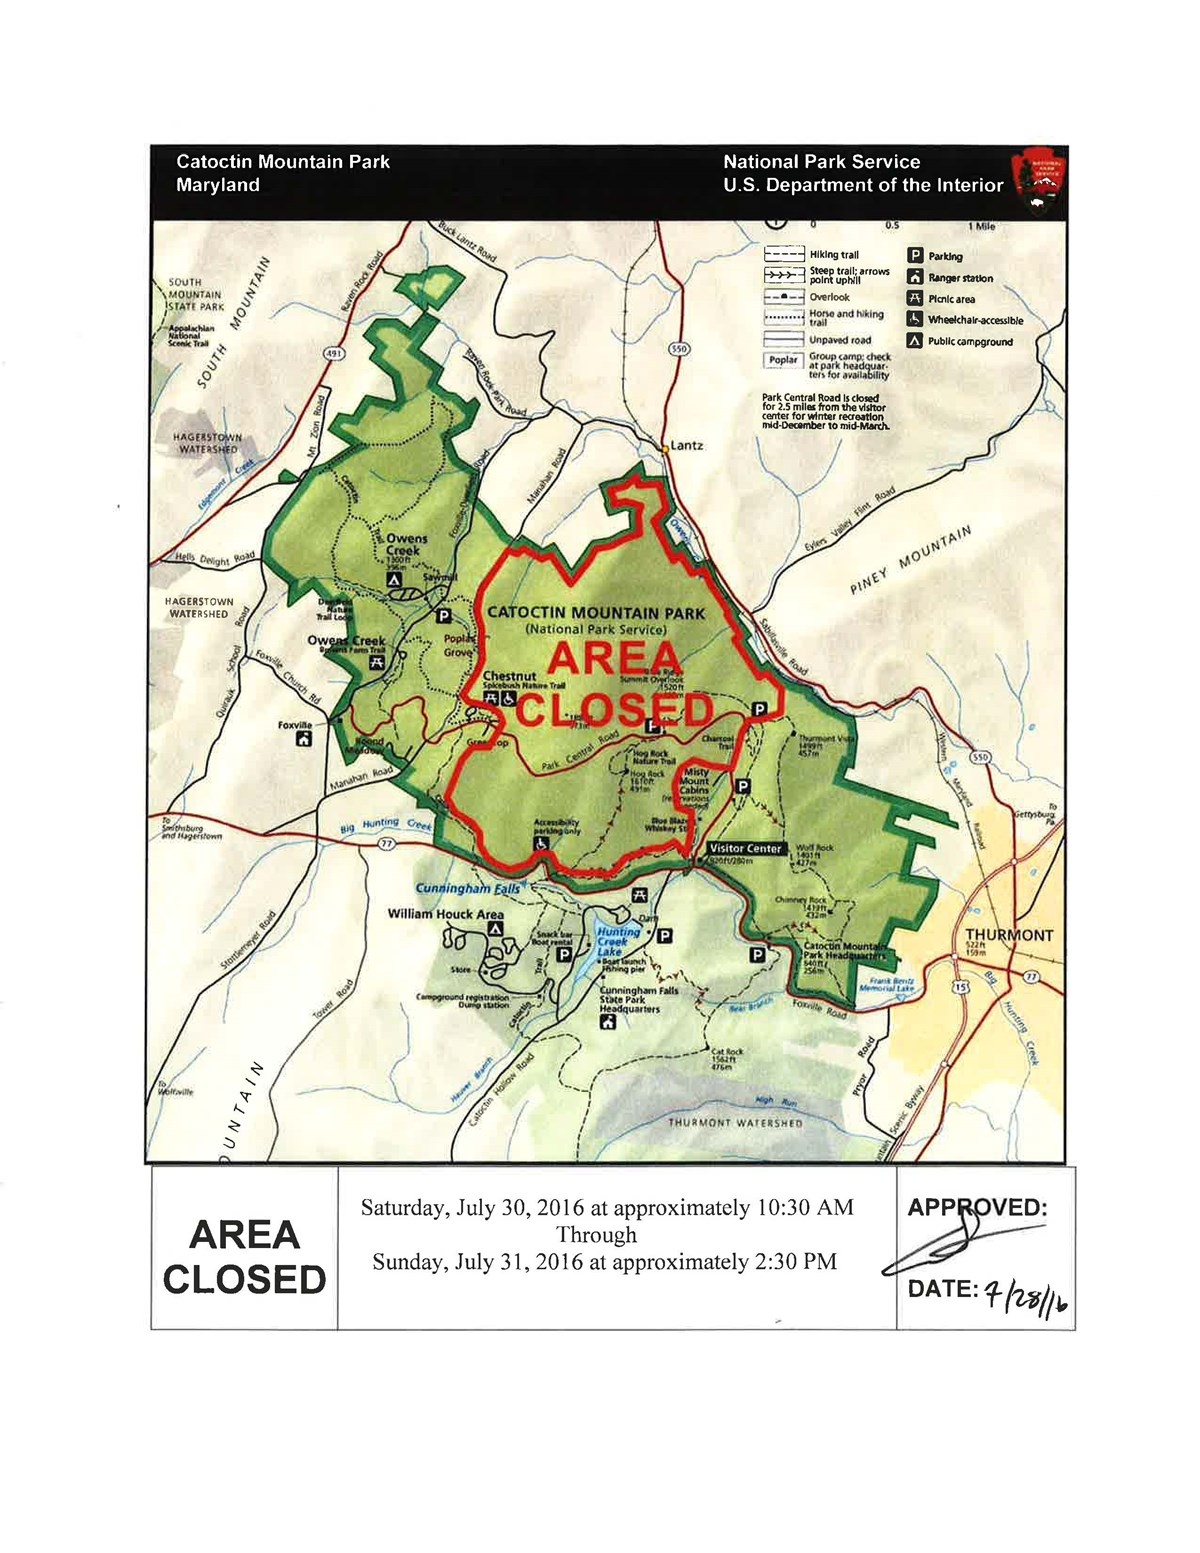 Map of Catoctin Mountain Park showing closed areas